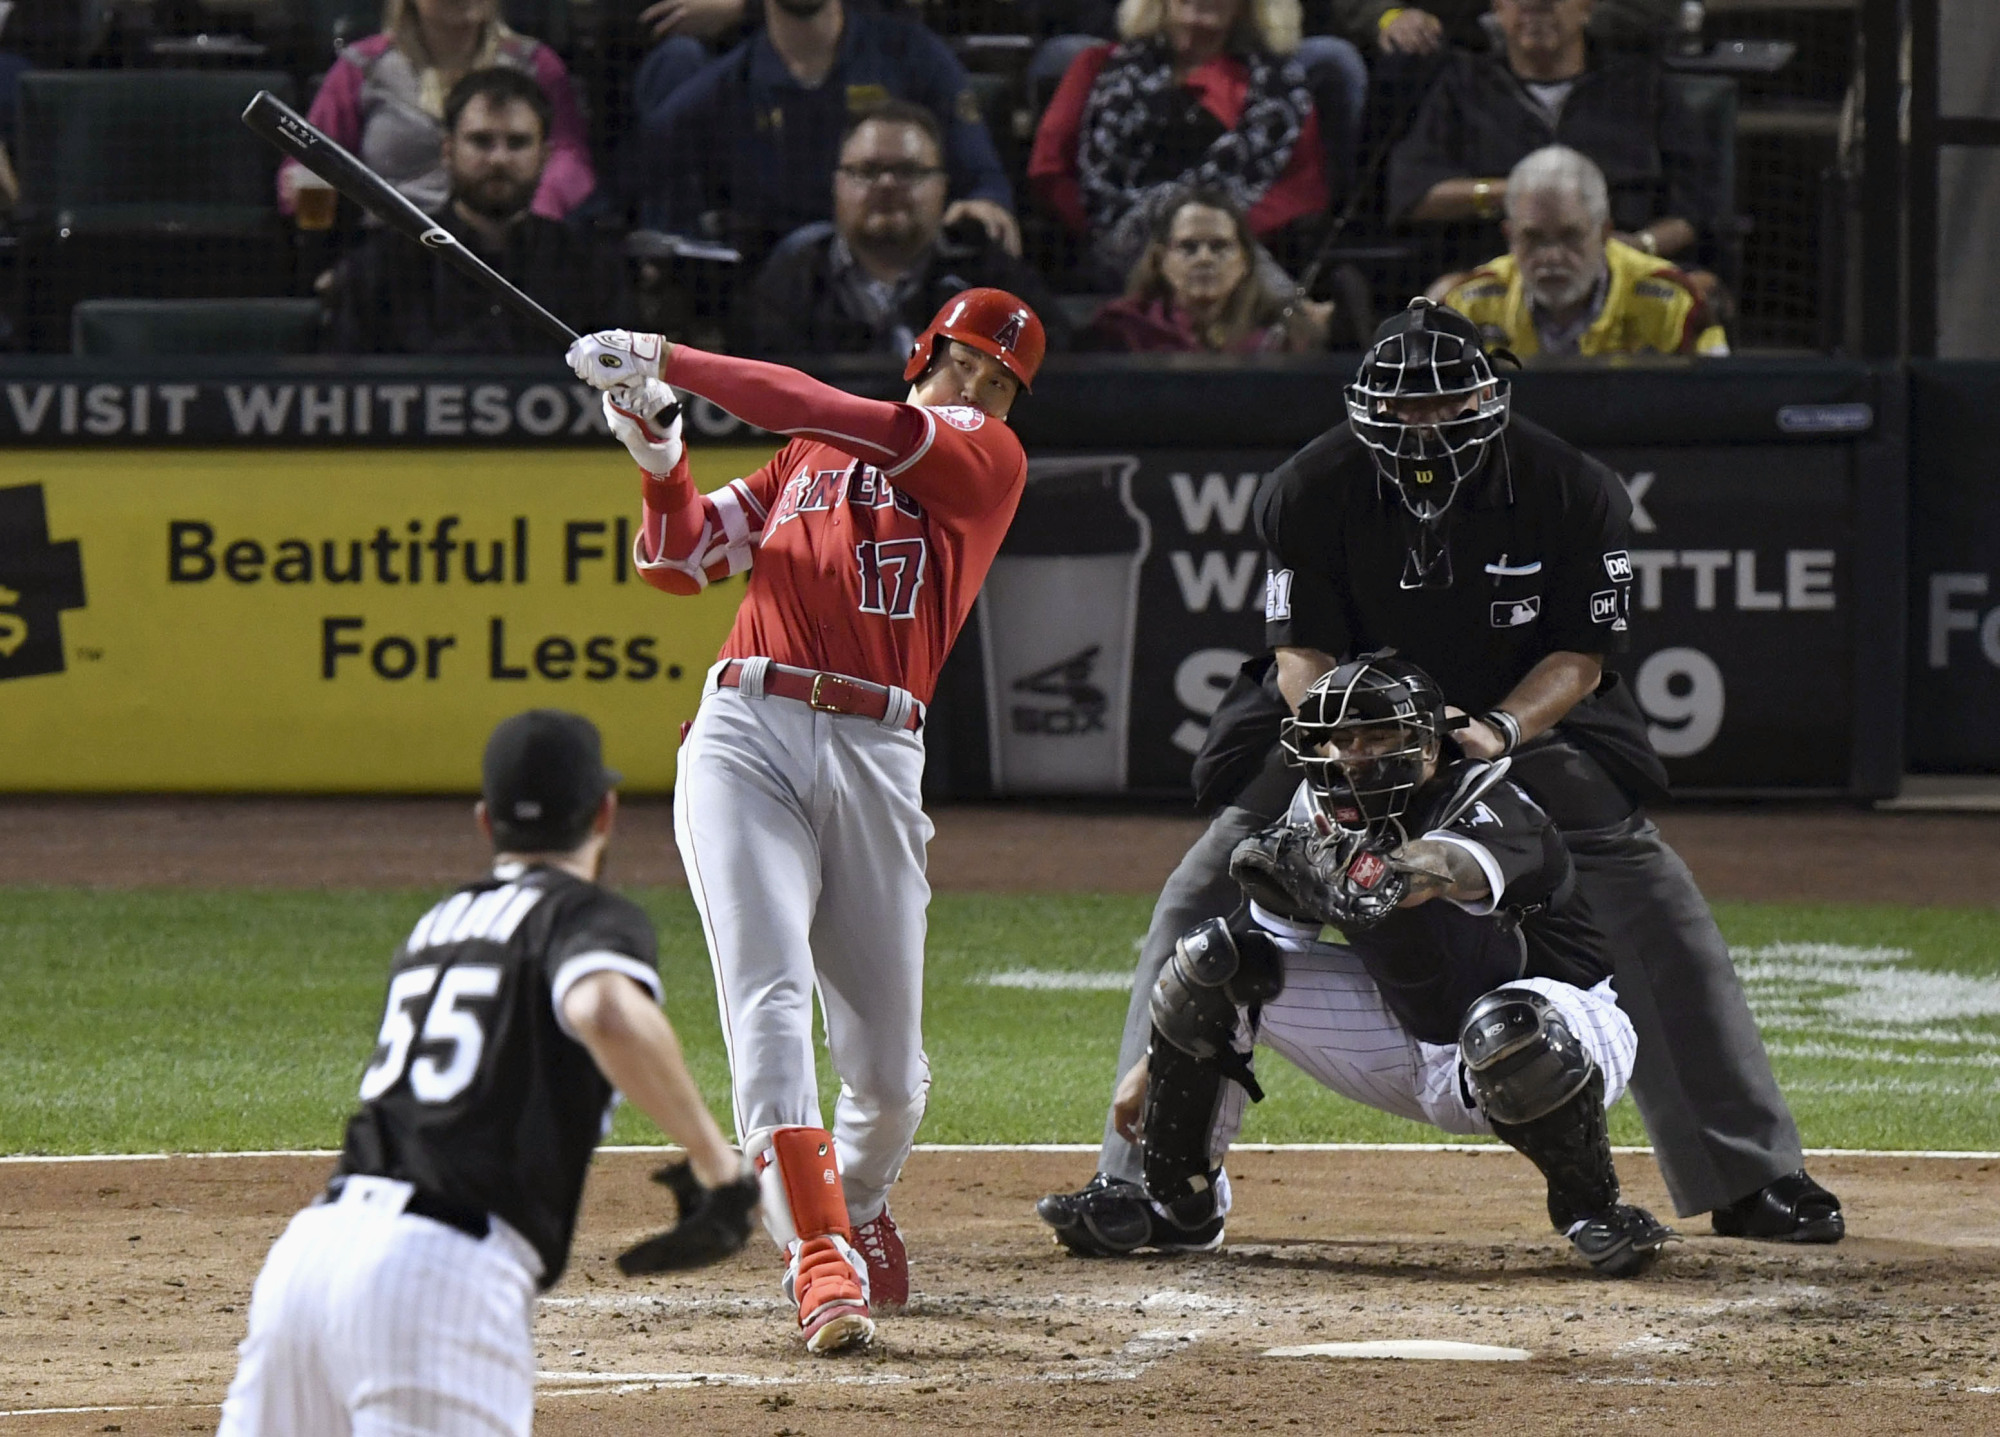 The Angels' Shohei Ohtani blasted 22 home runs and went 4-2 in 10 games as a starting pitcher in his first season in the major leagues. | KYODO